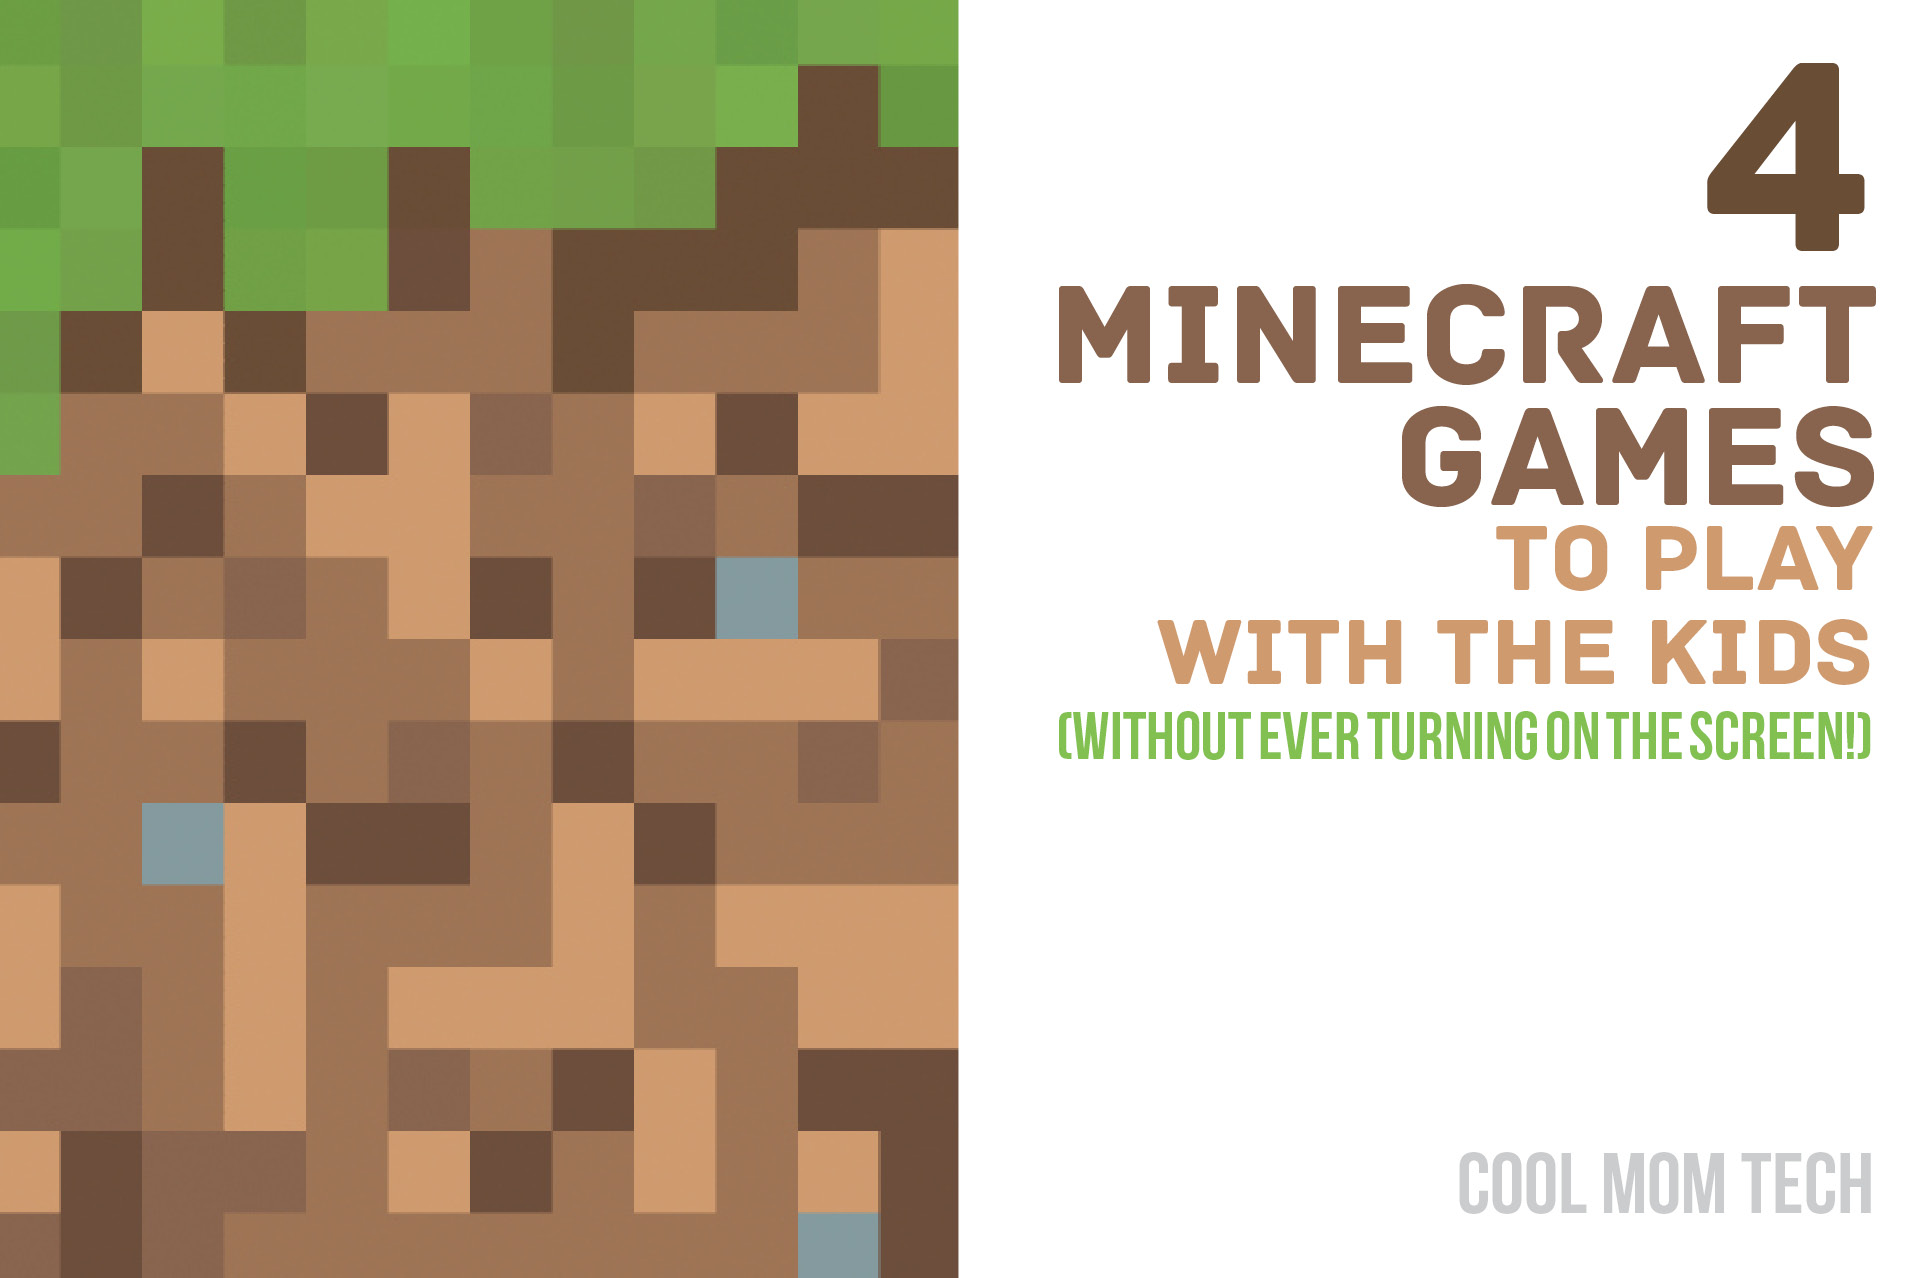 4 ideas for Minecraft games to play with the kids – without even turning on the screen.